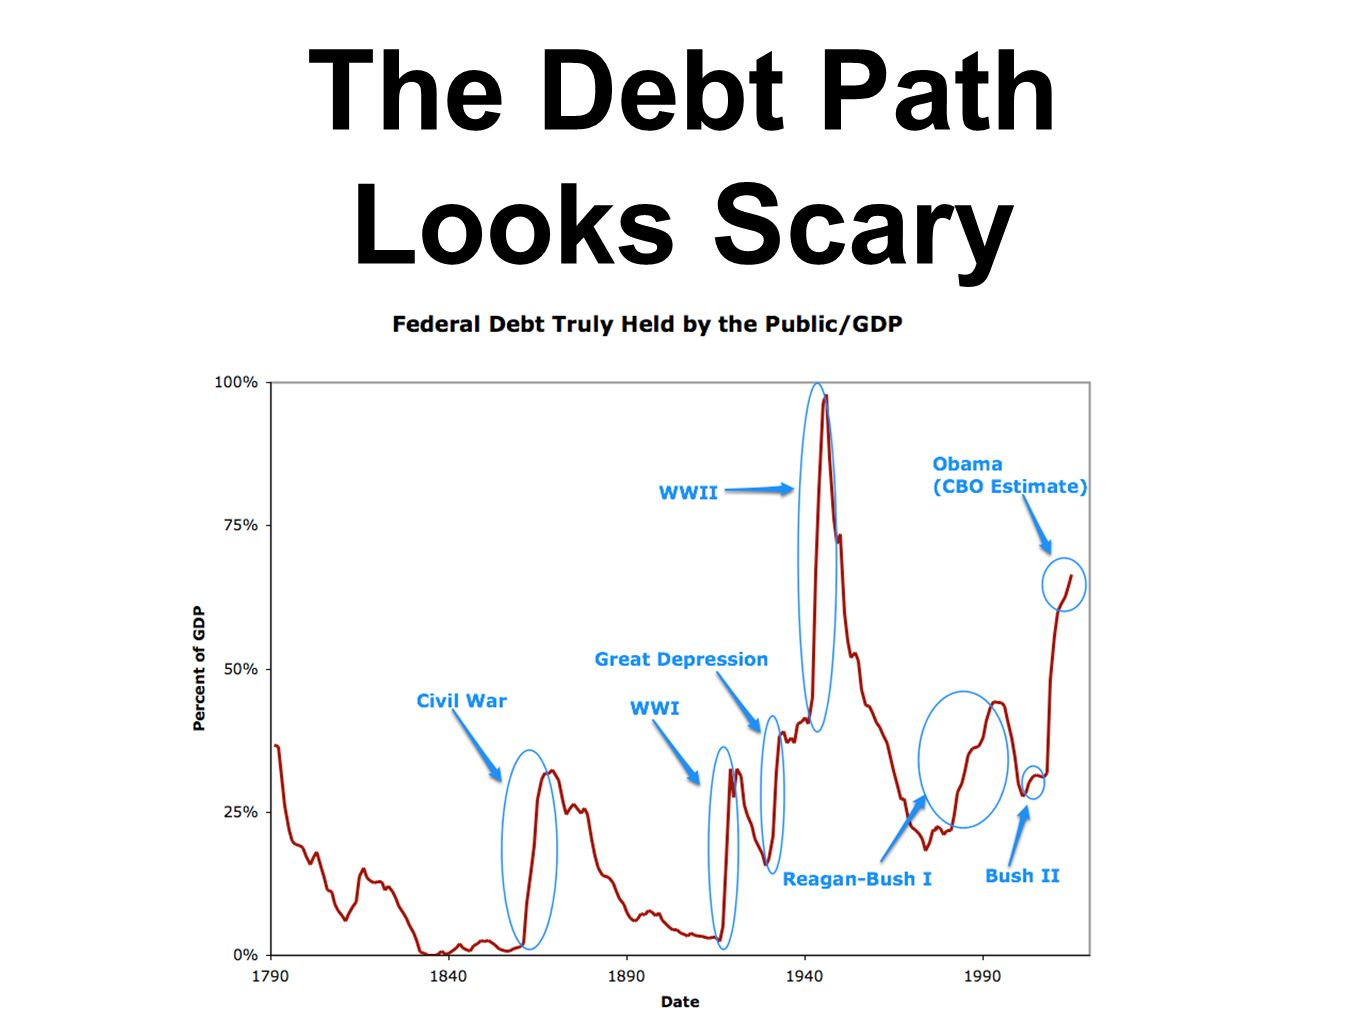 The Debt Path Looks Scary